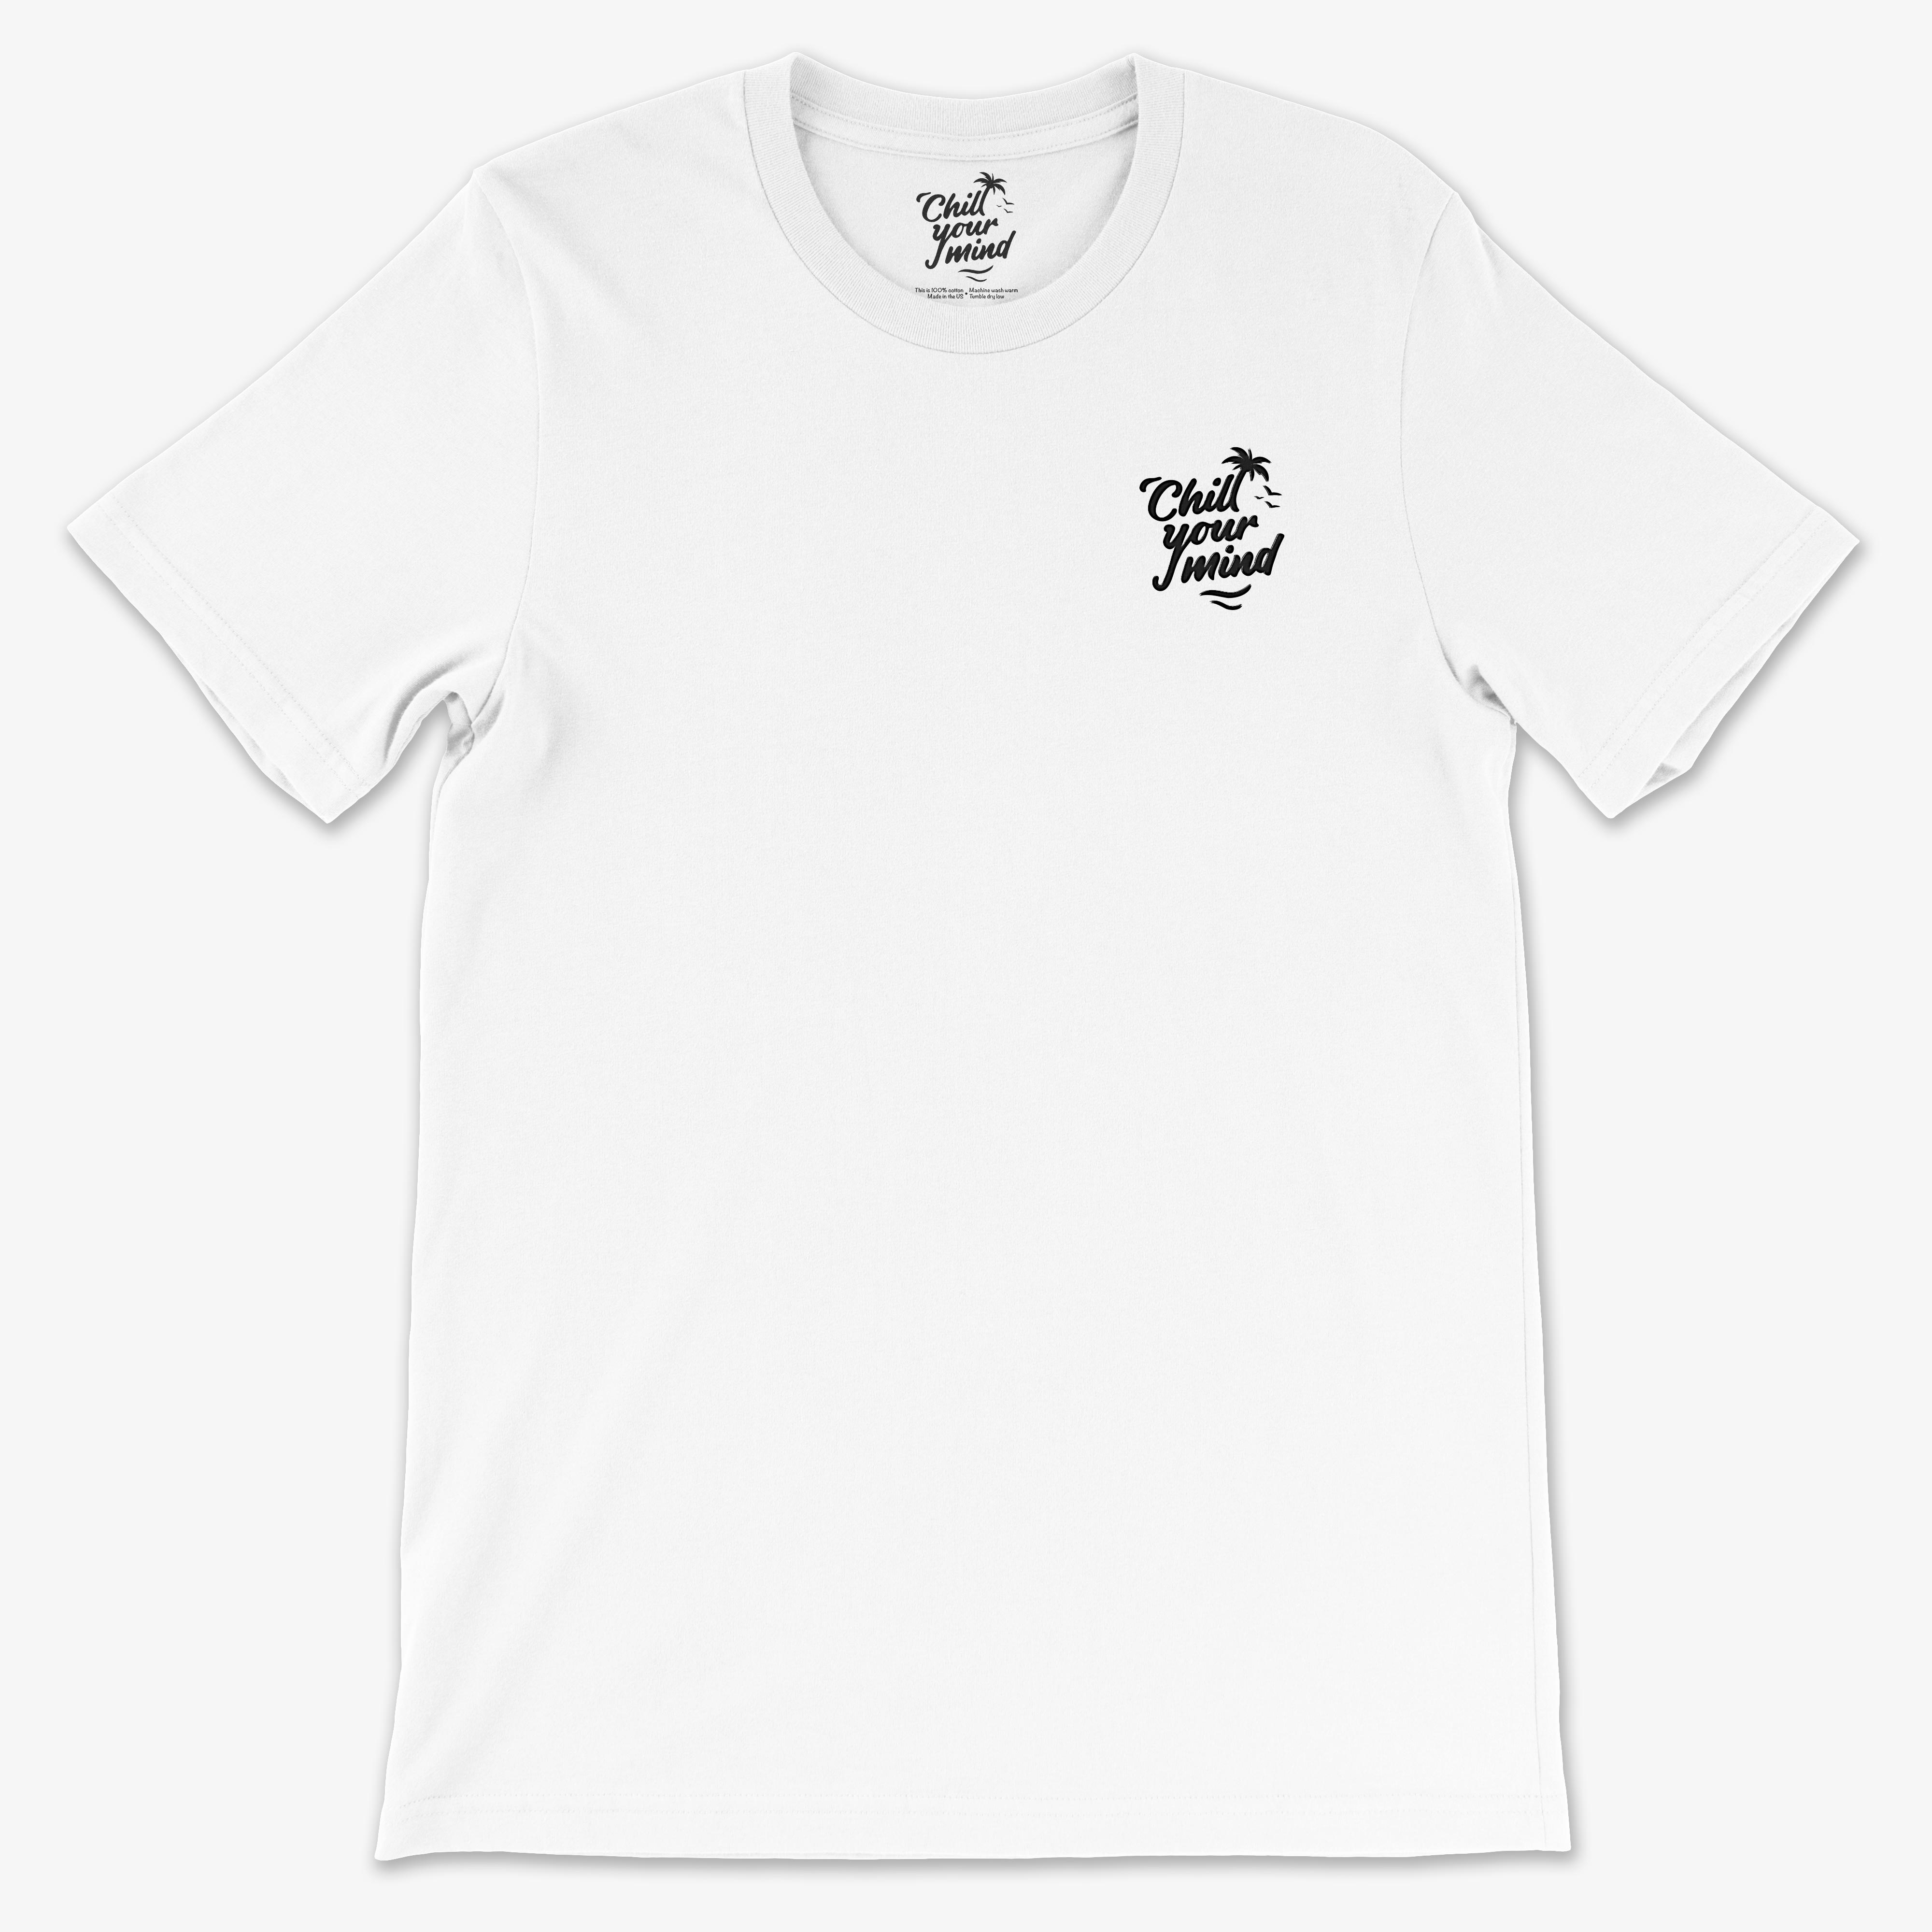 ChillYourMind - Embroidered Logo Shirt